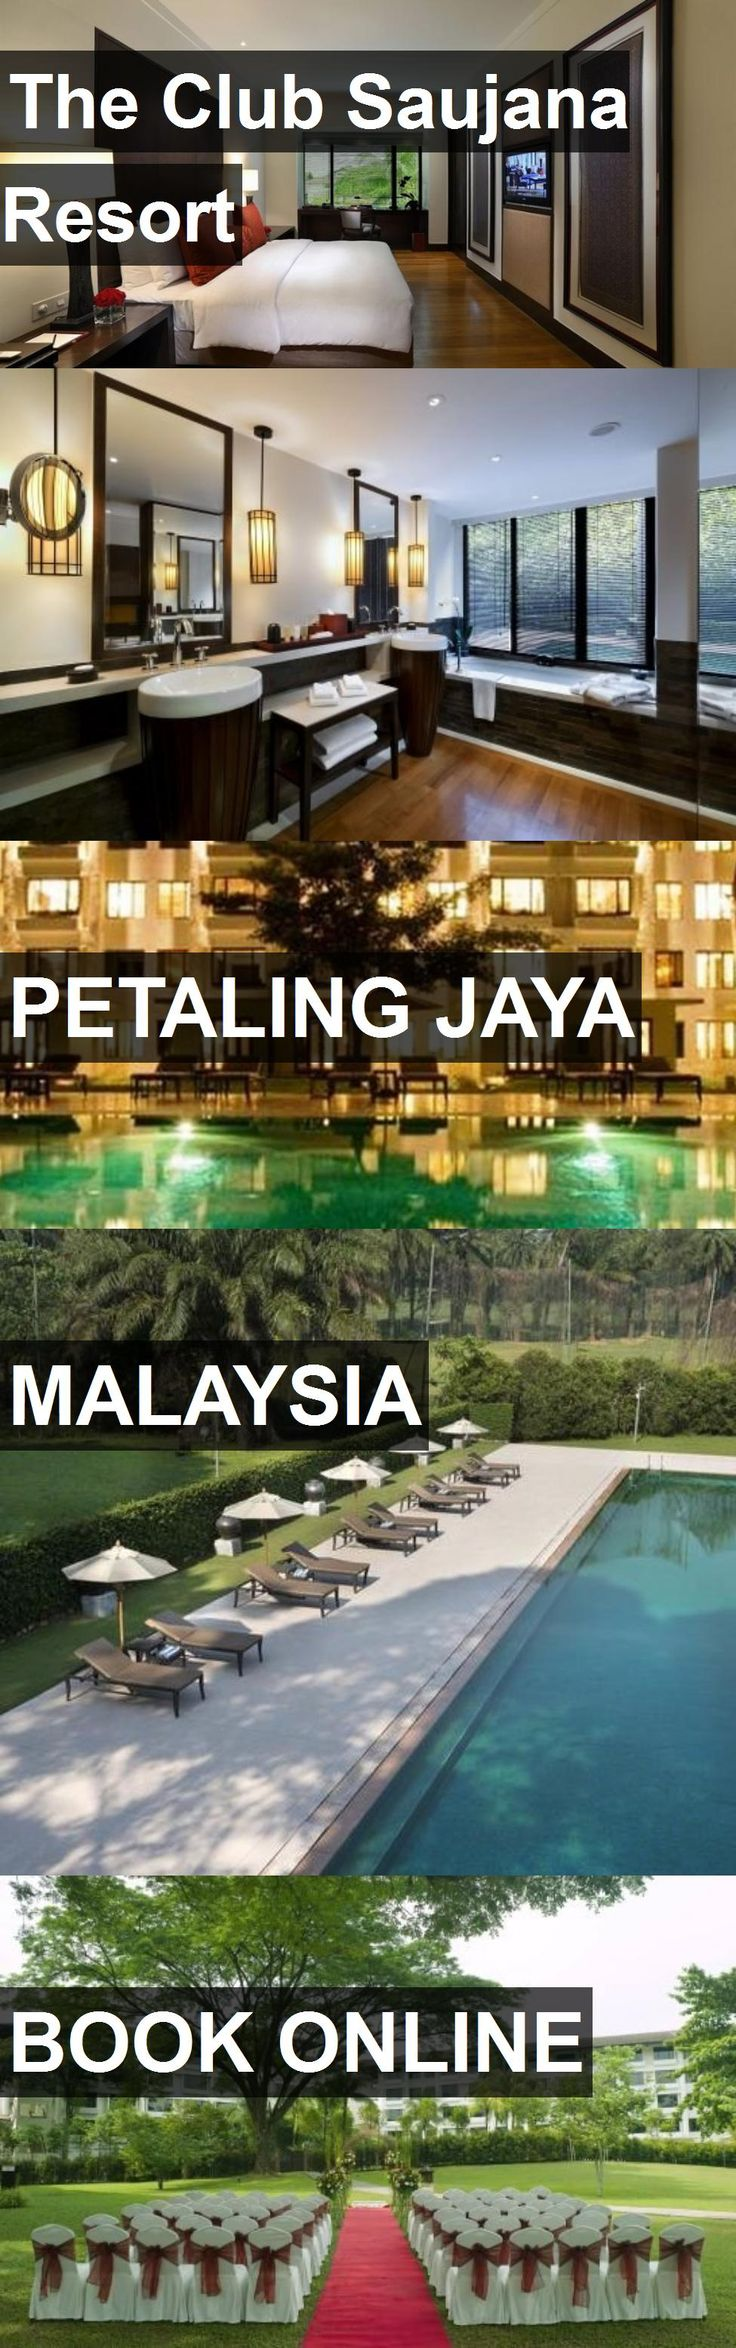 Hotel The Club Saujana Resort in Petaling Jaya, Malaysia. For more information, photos, reviews and best prices please follow the link. #Malaysia #PetalingJaya #travel #vacation #hotel